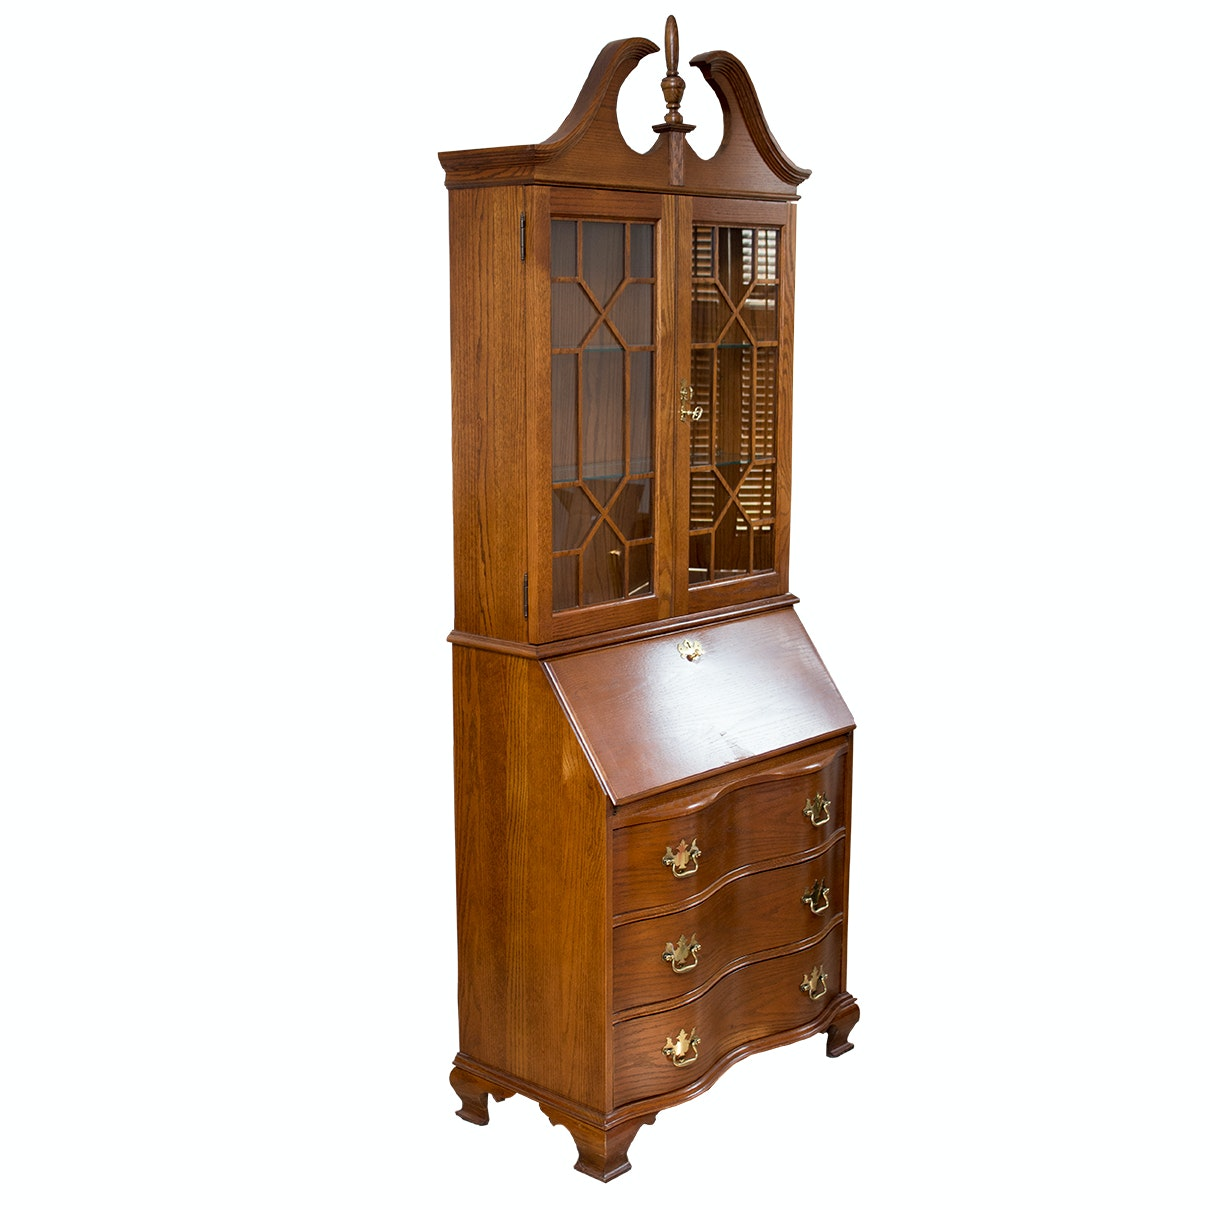 Chippendale Style Illuminated Secretary Bookcase by Jasper Cabinet